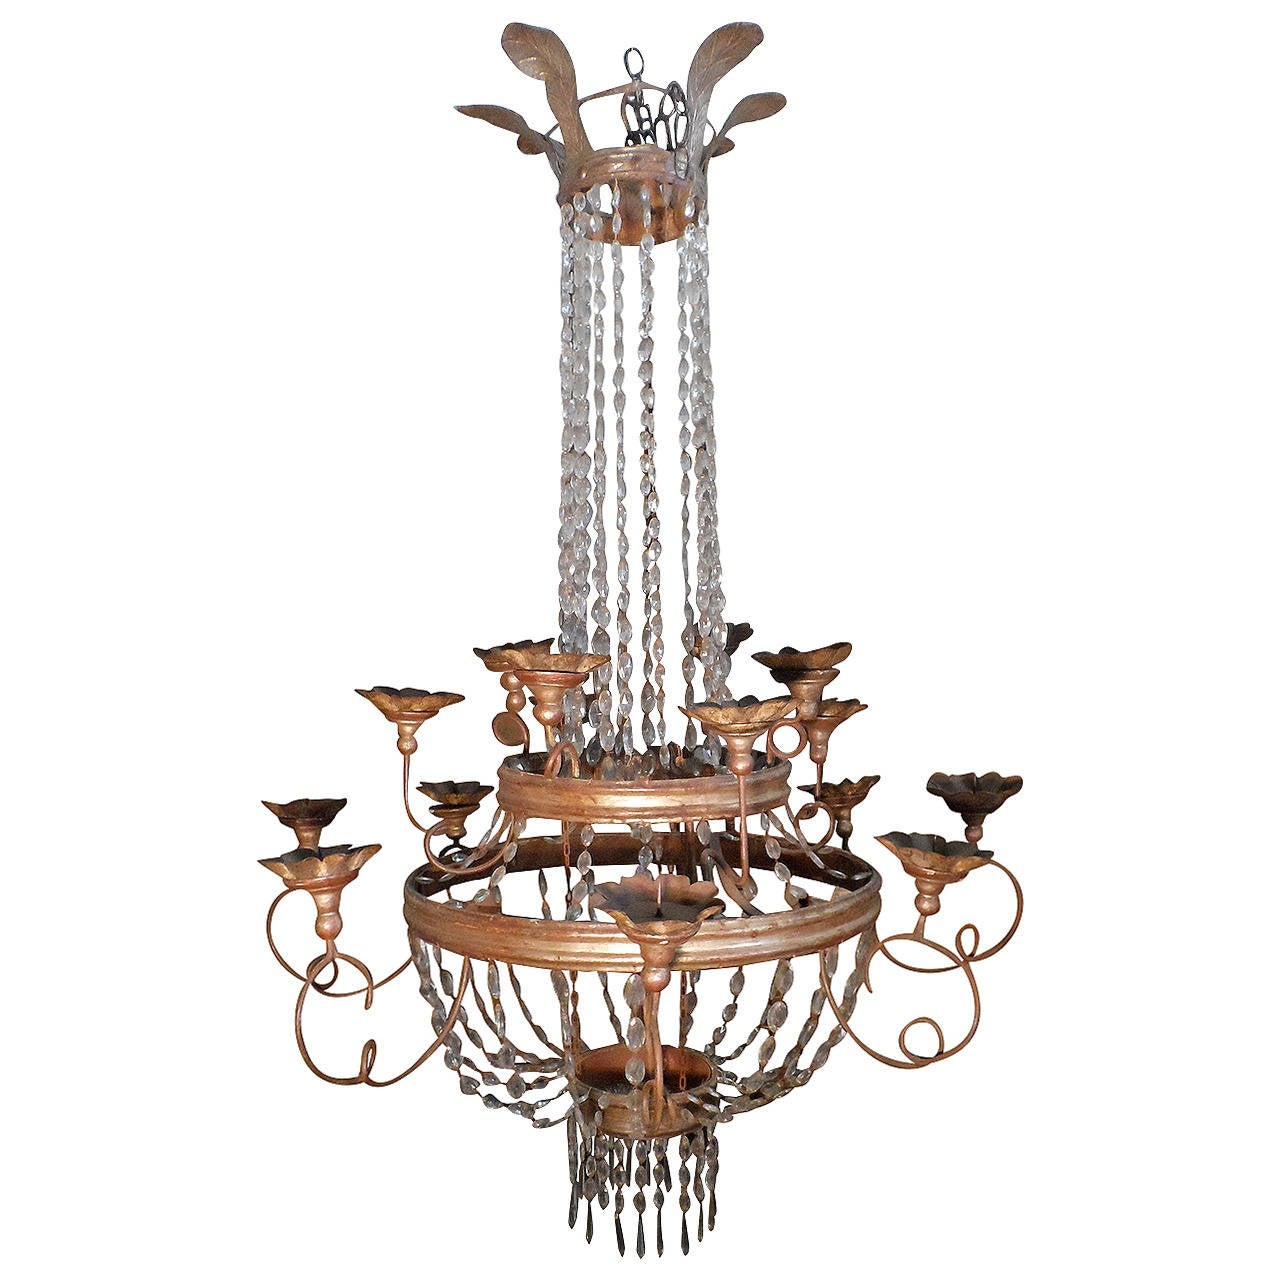 Italian Empire Period Silver Leaf Chandelier at 1stdibs